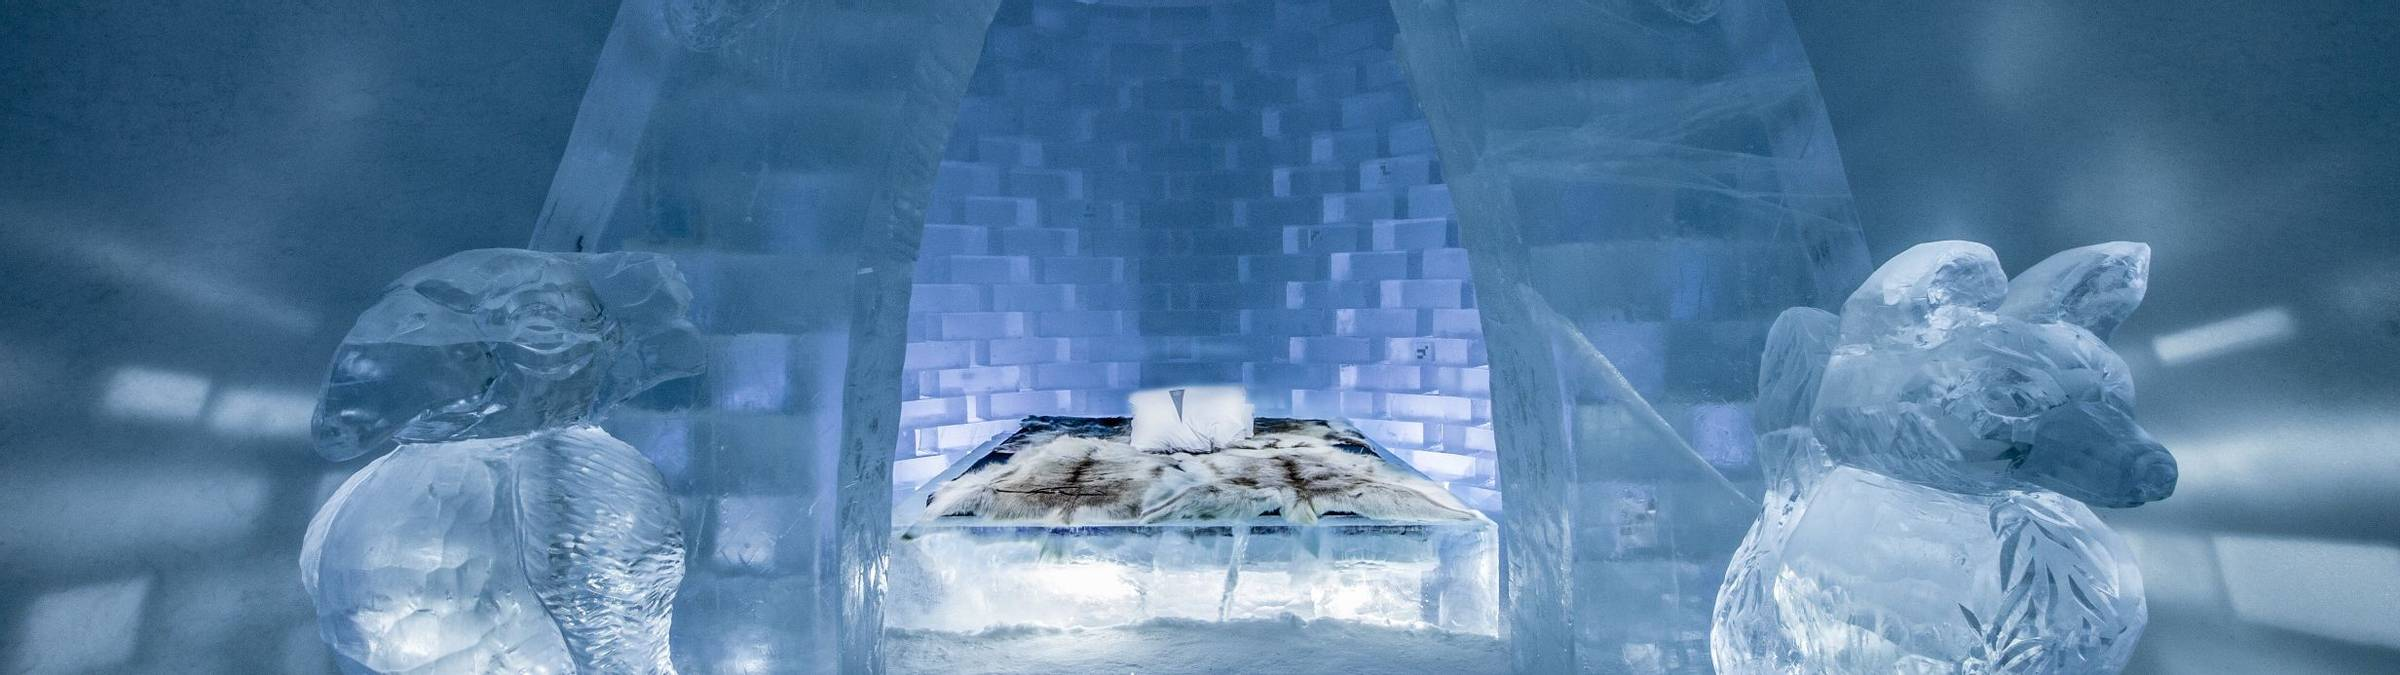 ICEHOTEL 29  Art Suite Haven Design Jonas Johansson, Jordi Claramunt & Lukas Petko. Photo RESIZED Credit Asaf Kliger & ICEHO…